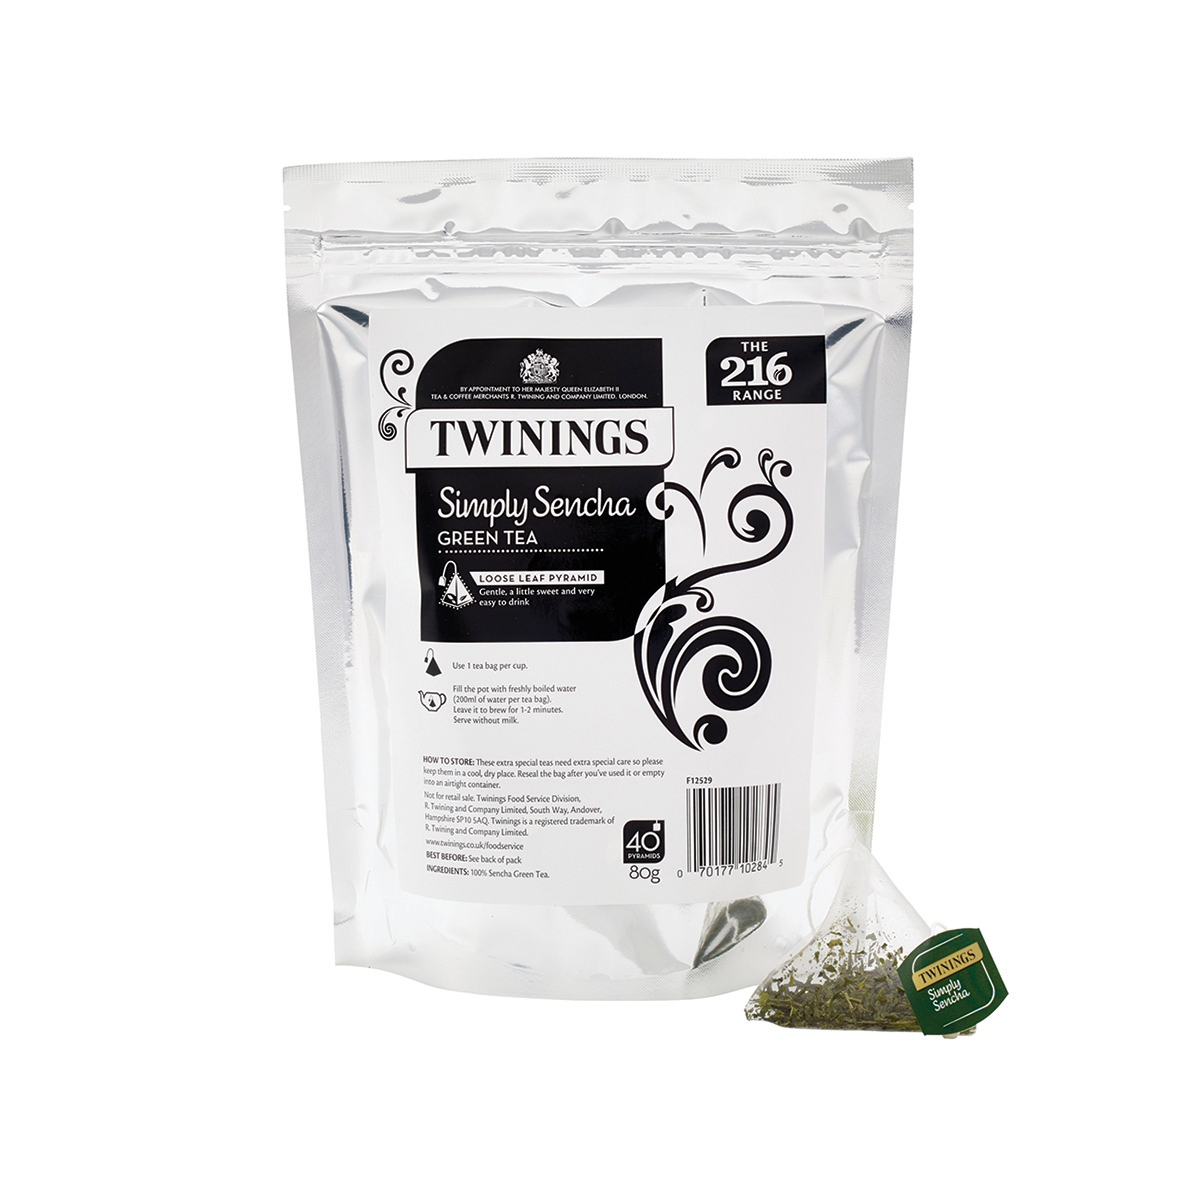 Twinings Tea Luxury Pyramid Teabags Simply Sencha Pouch Ref F12529 40 Bags